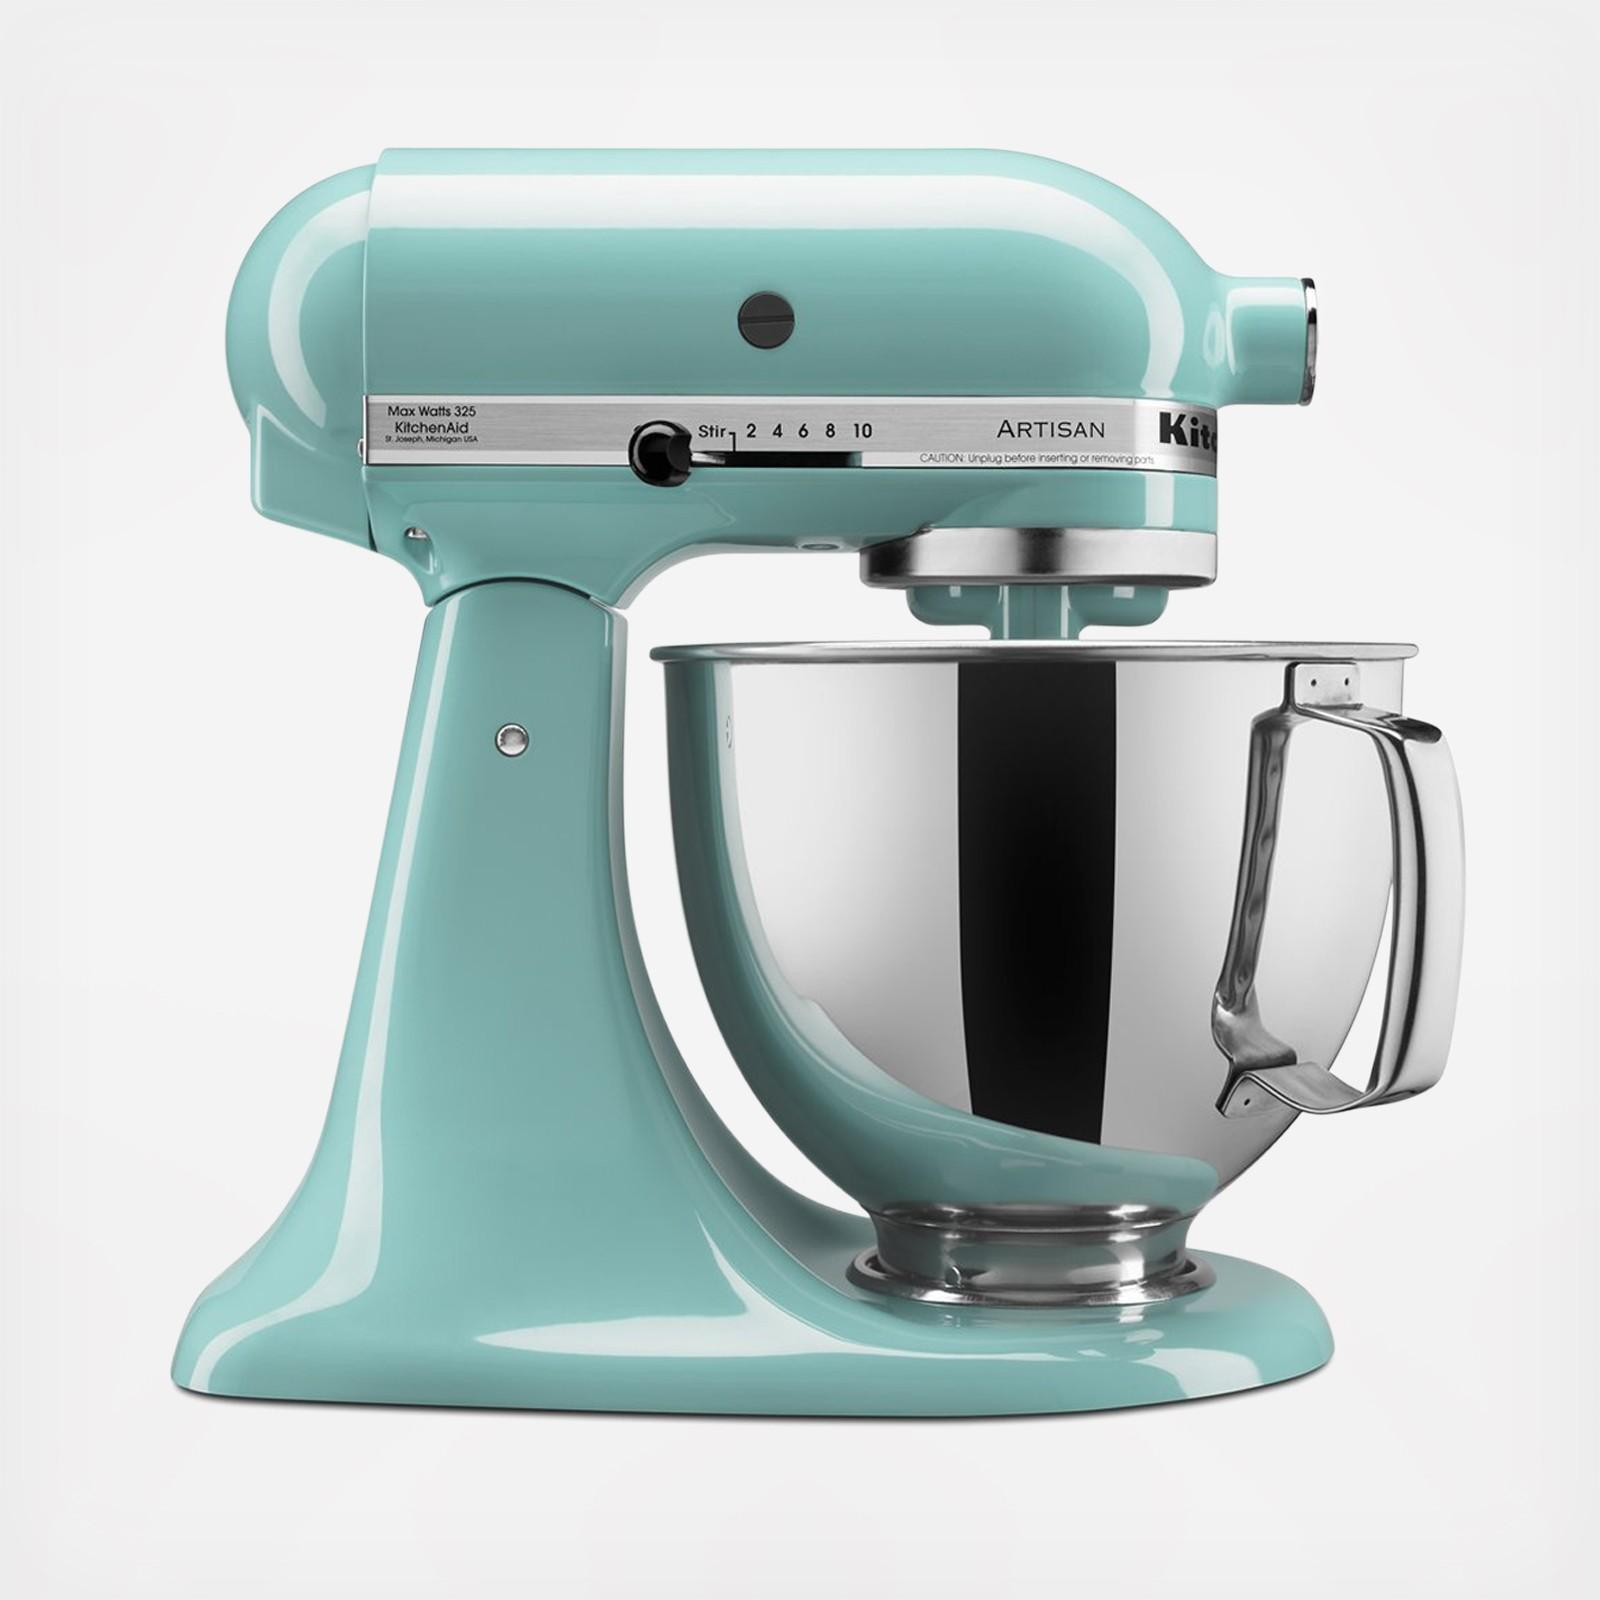 Kitchenaid Batteur Sur Socle Artisan Series 5 Qt Tilt Head Stand Mixer Zola